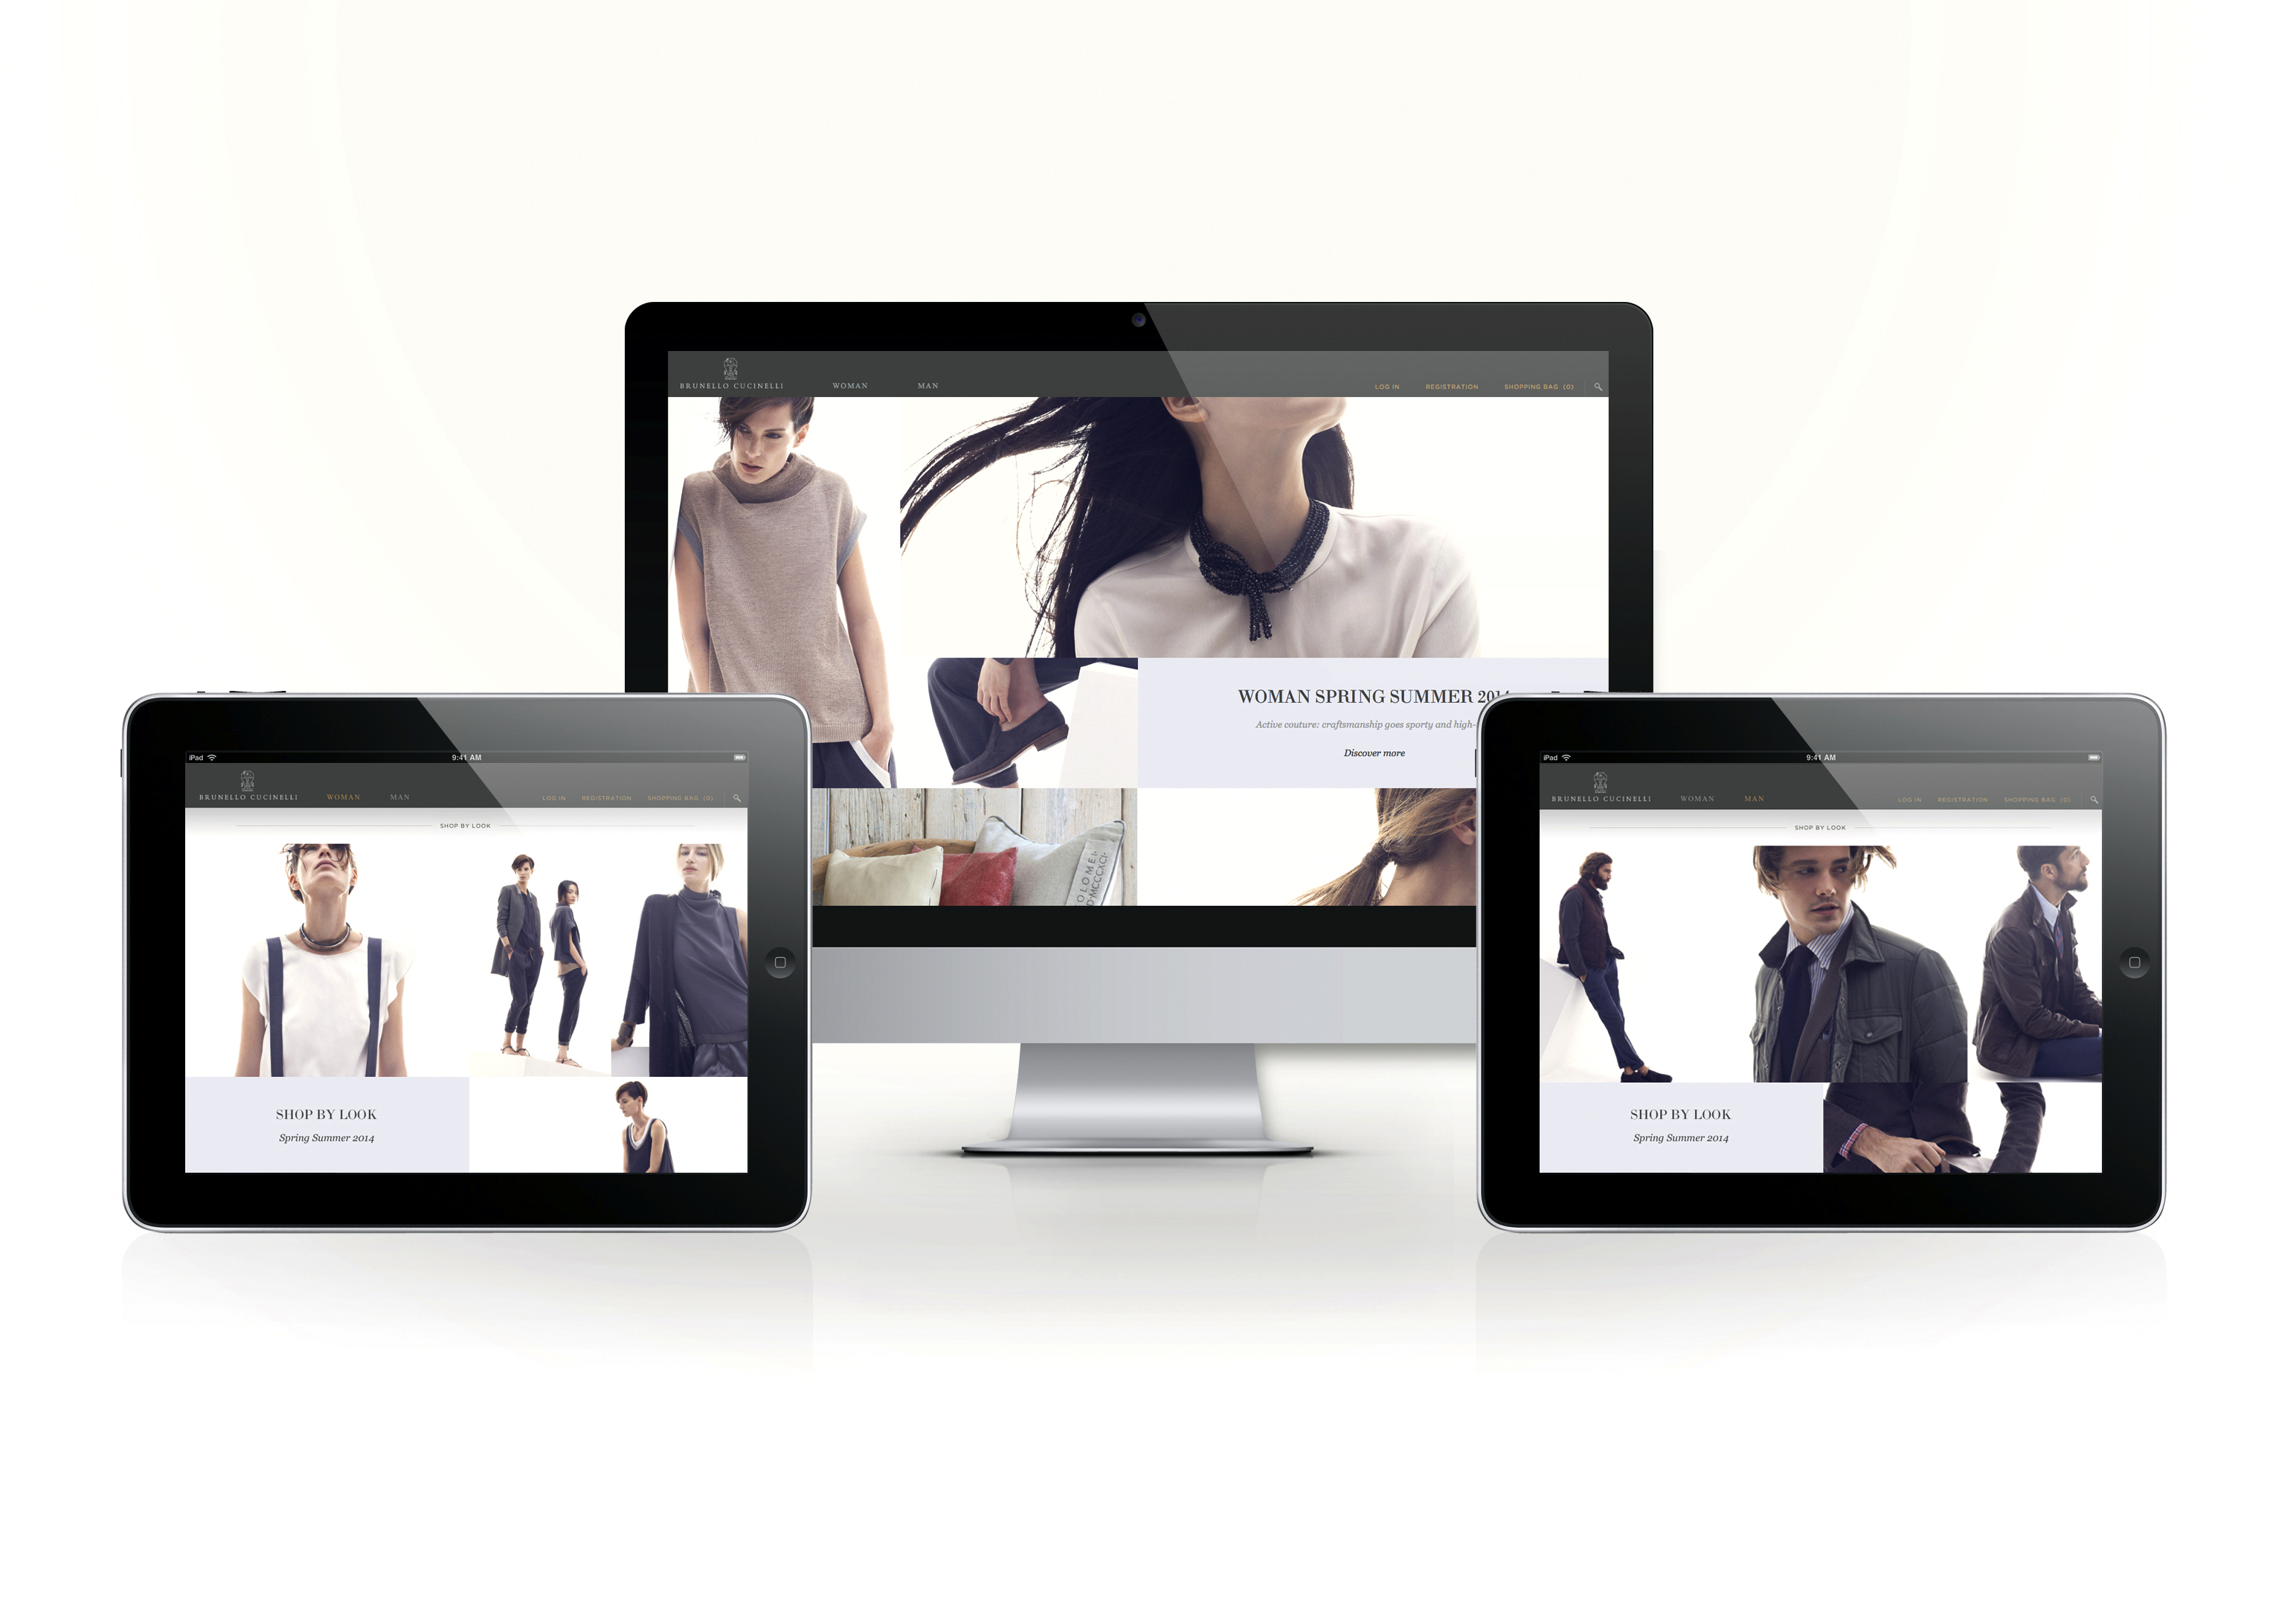 Yoox e-commerce luxury fashion